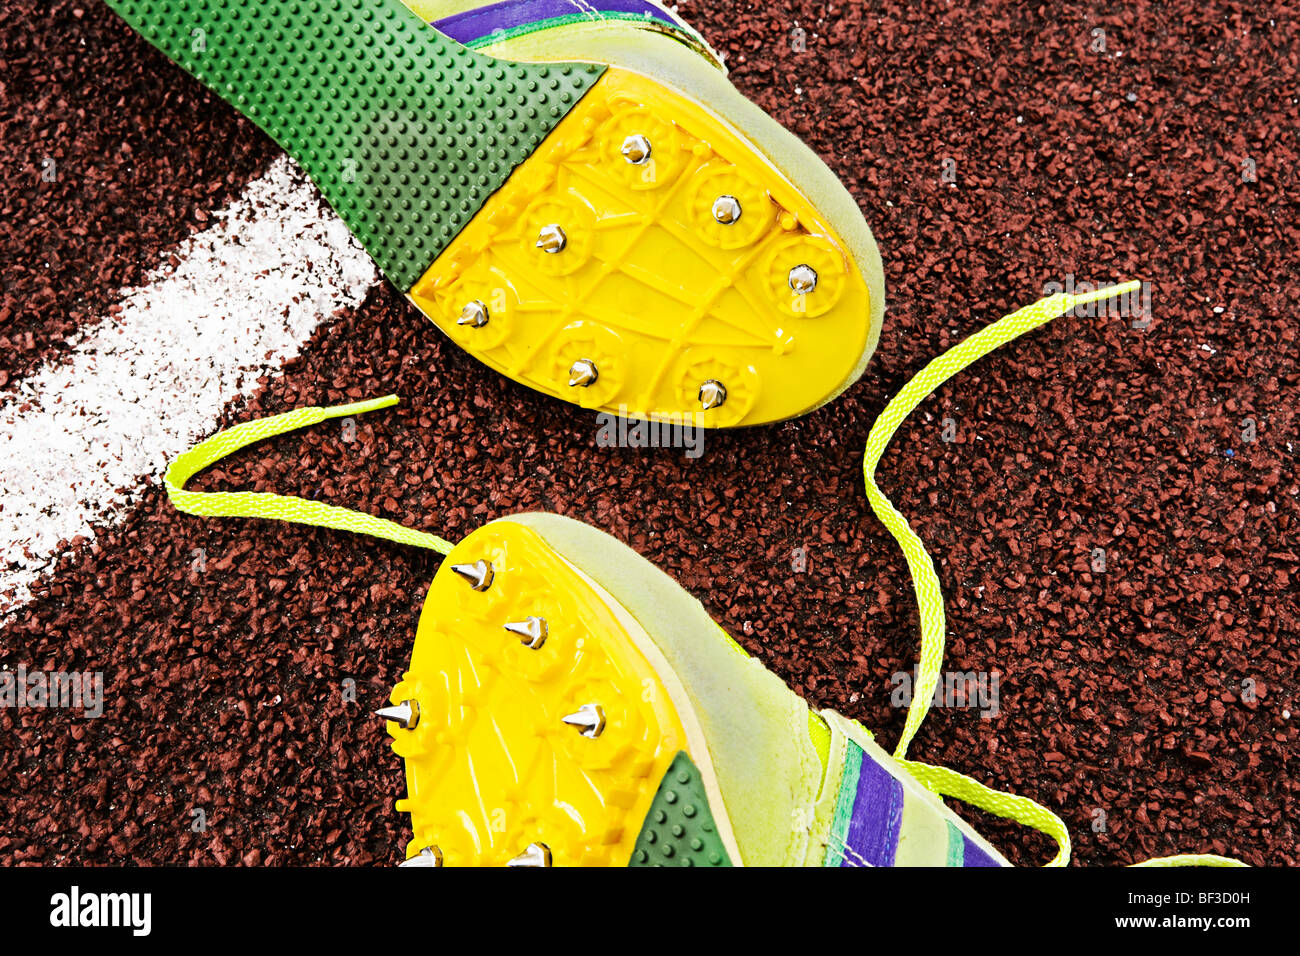 Spiked running shoes on track - Stock Image